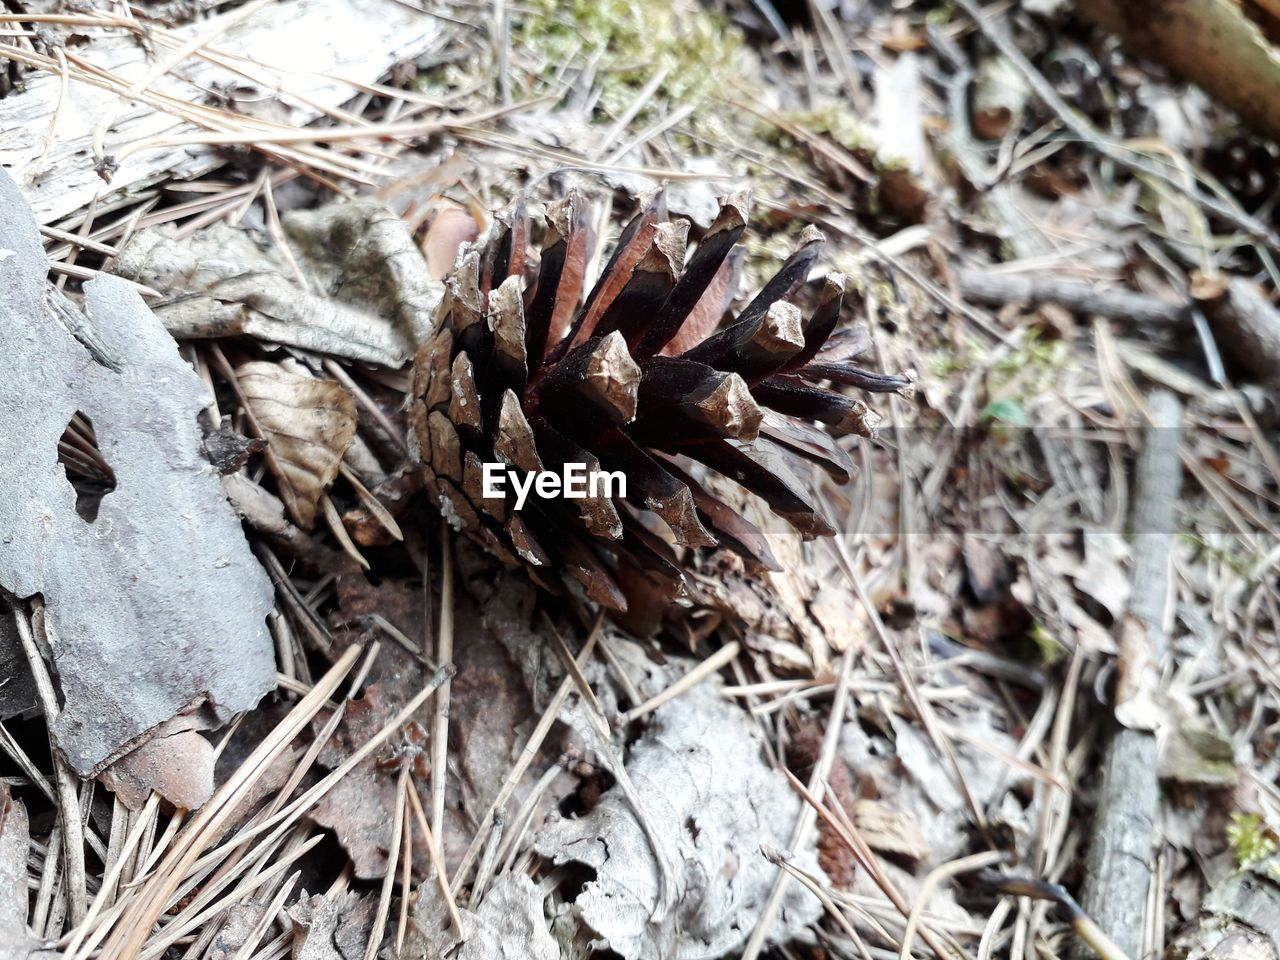 close-up, land, day, pine cone, dry, nature, field, no people, selective focus, plant, high angle view, focus on foreground, outdoors, brown, sunlight, twig, tree, falling, forest, leaf, coniferous tree, dried